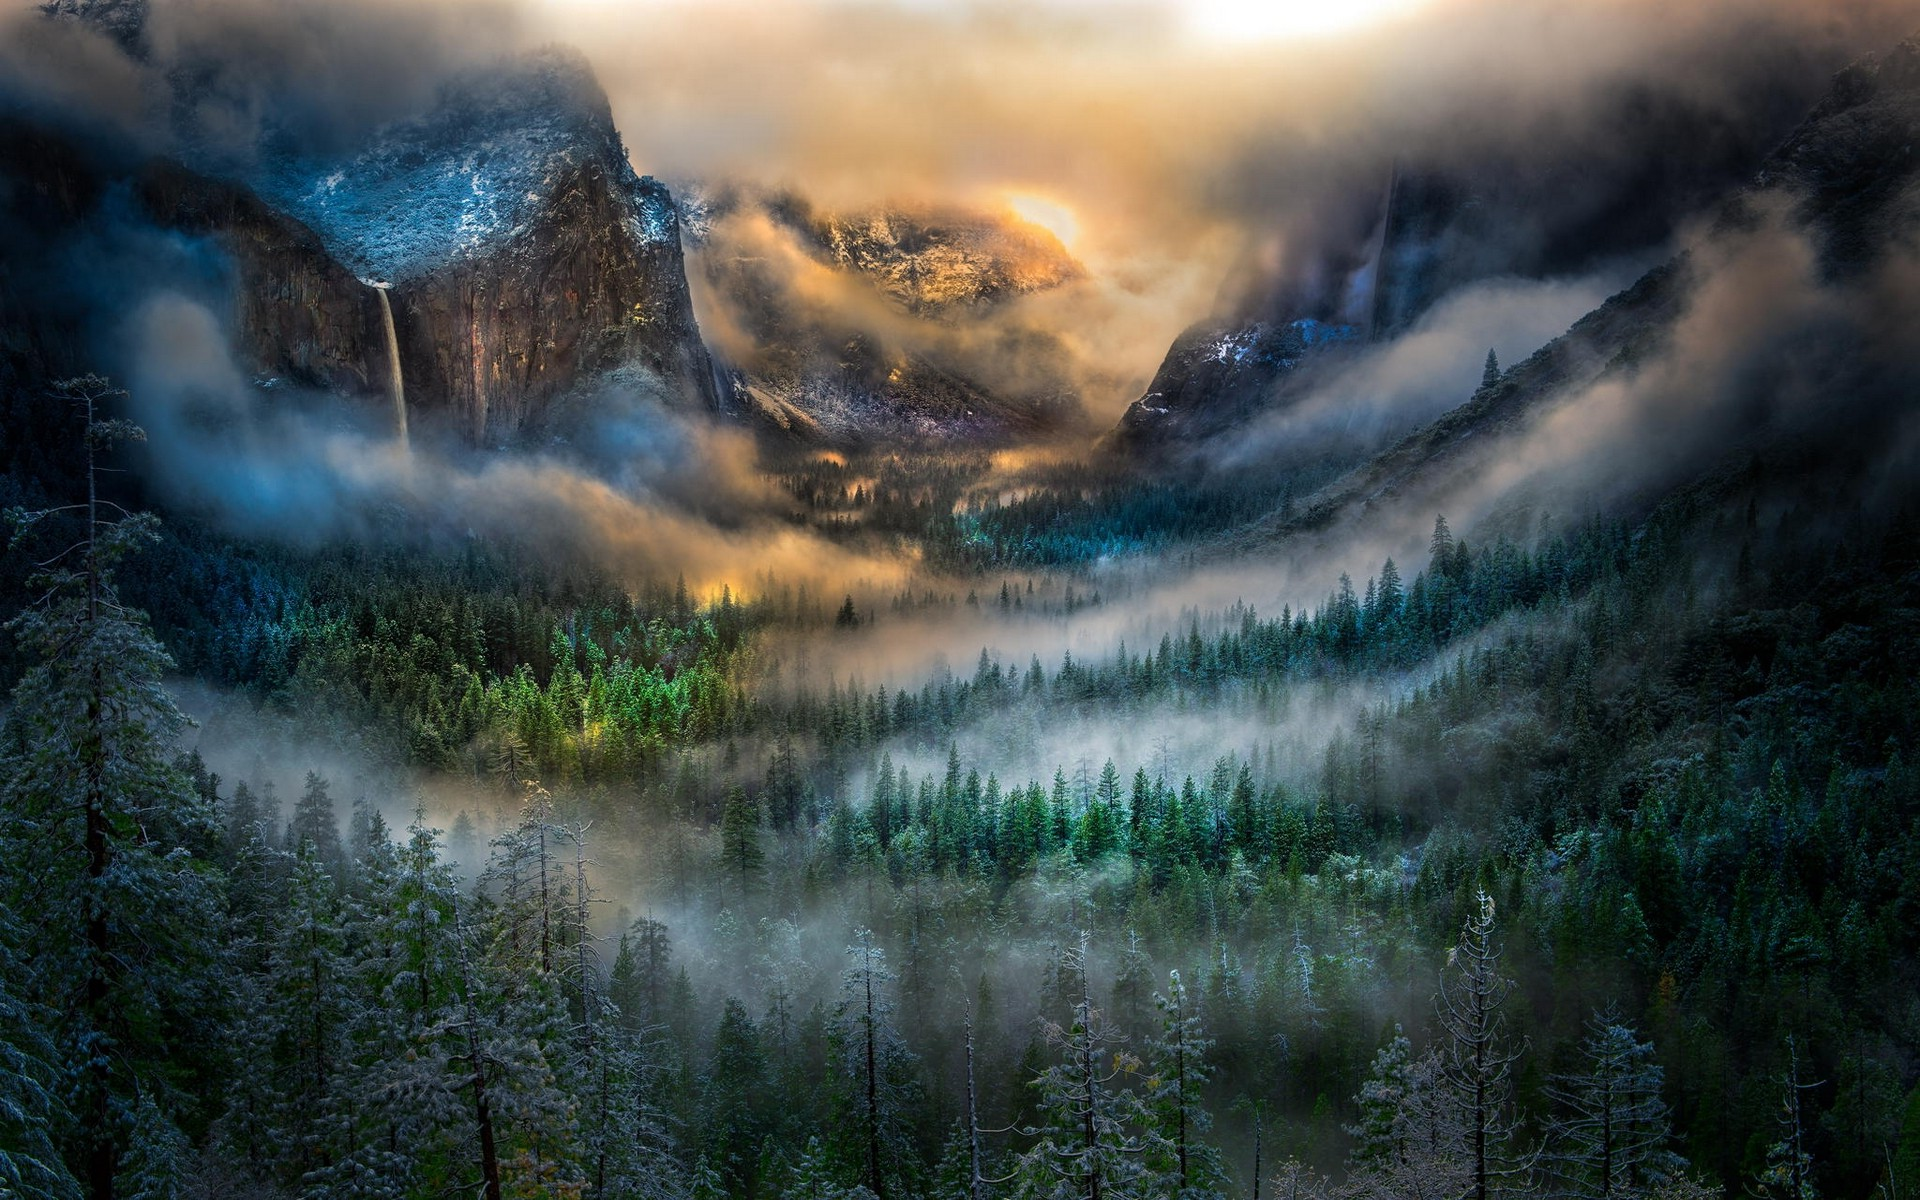 Forest Animal Wallpaper Nature Landscape Mountain Mist Yosemite Valley Winter